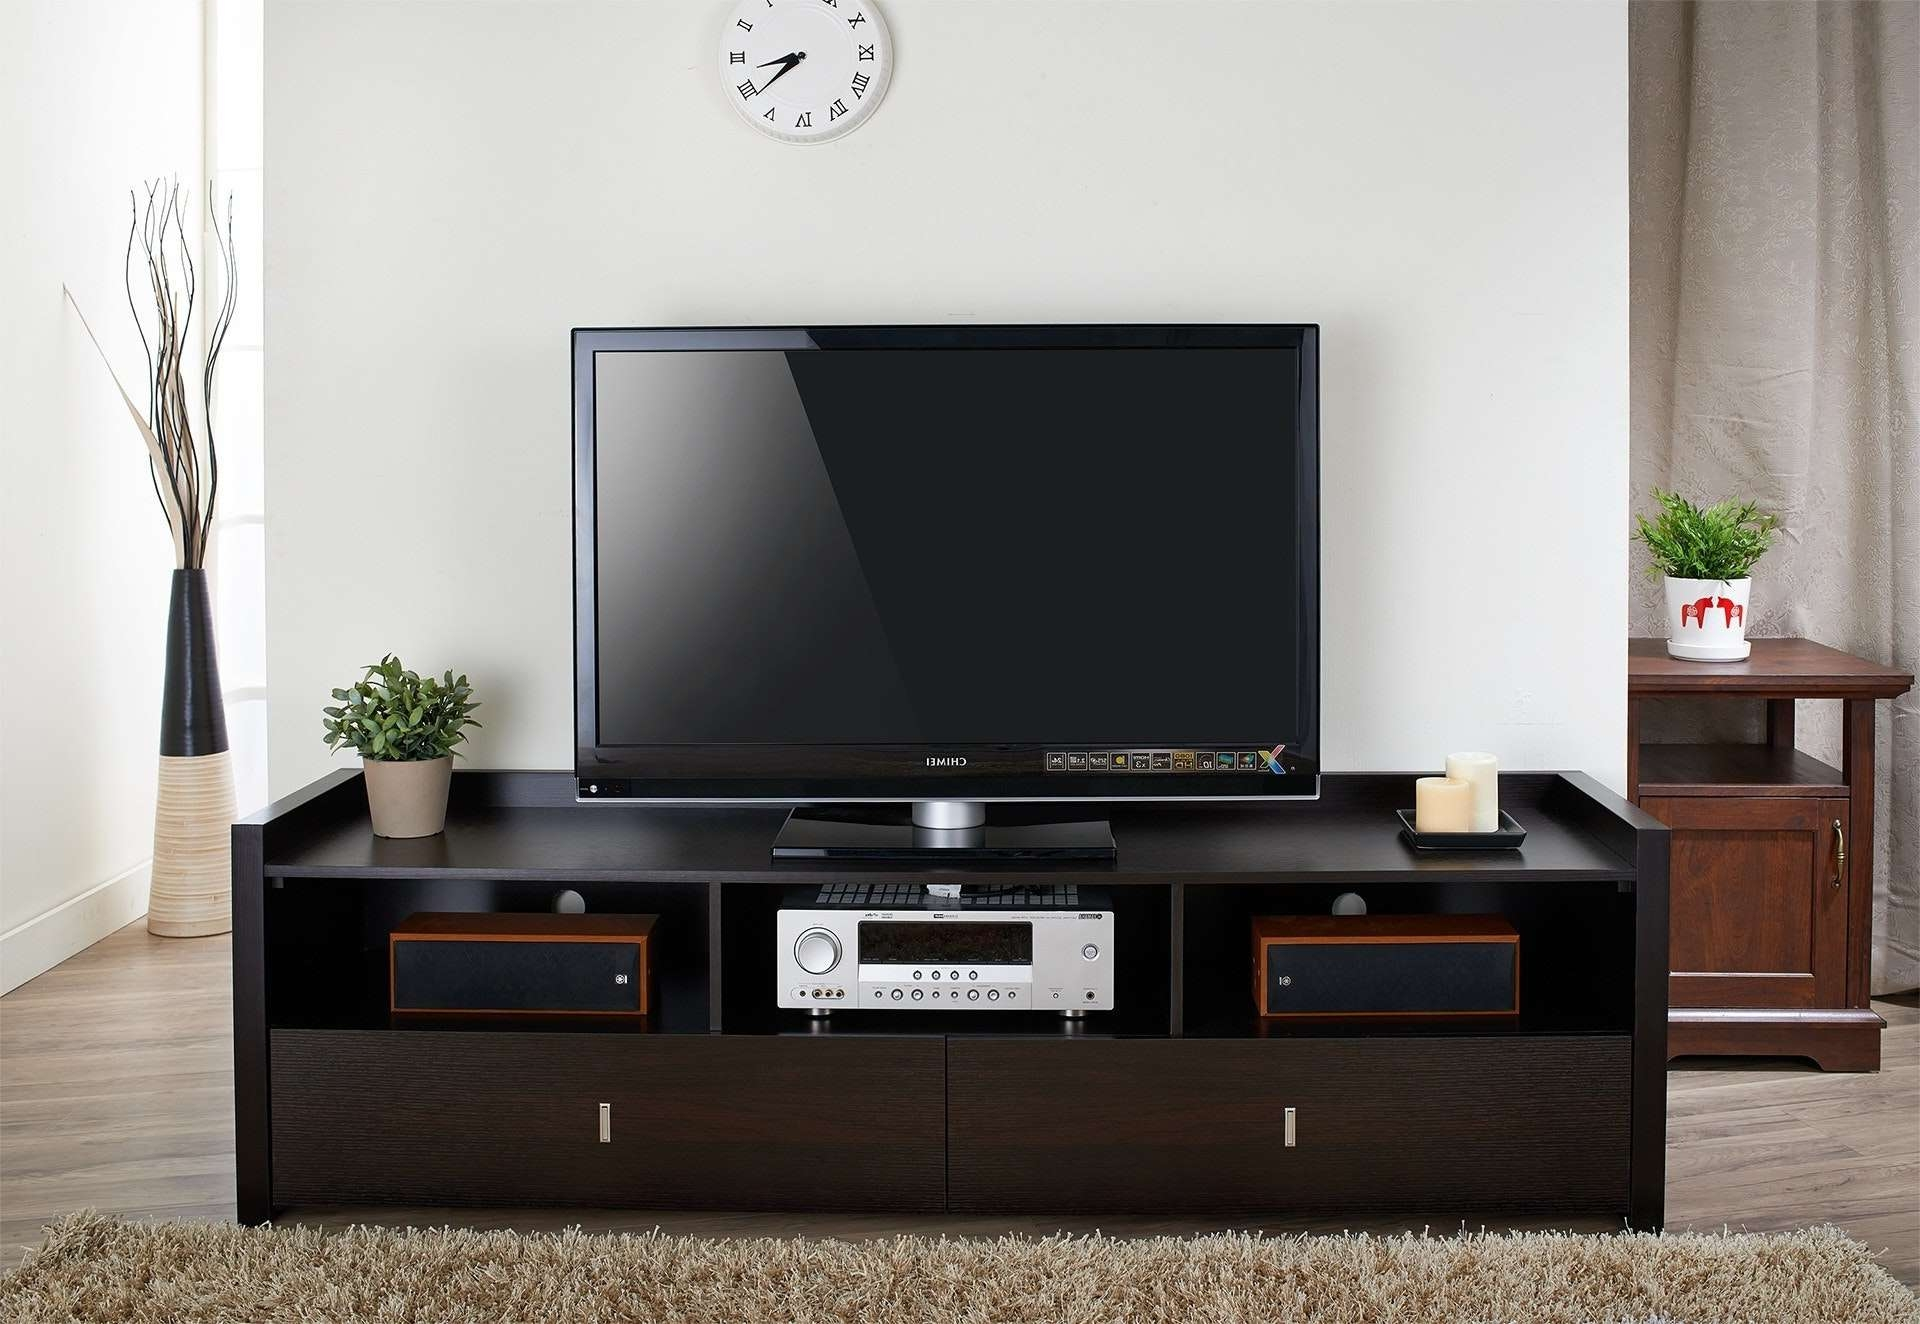 80 Inch Tv Stand Home Design Amish Furniture With Fireplace Stands For 80 Inch Tv Stands (View 13 of 15)